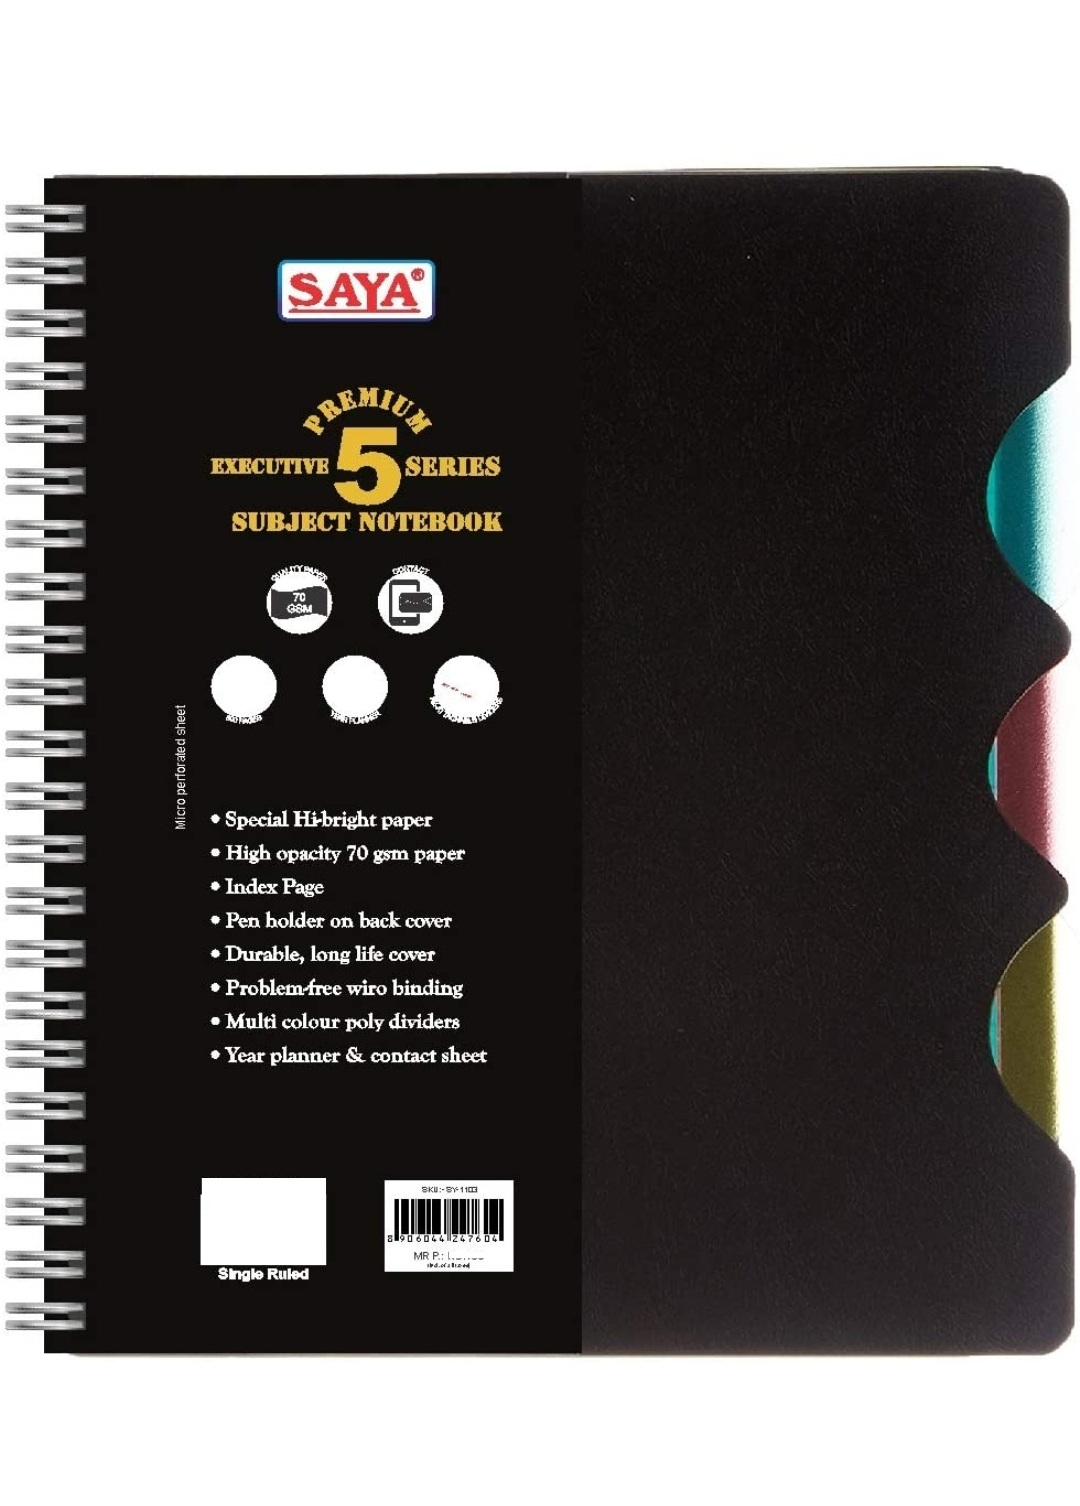 Saya Premium 5 Subject, Spiral Note Book, Executive Series, Single Line, 300 Pages, 27.9 X 21.6 cm, Pack of 1